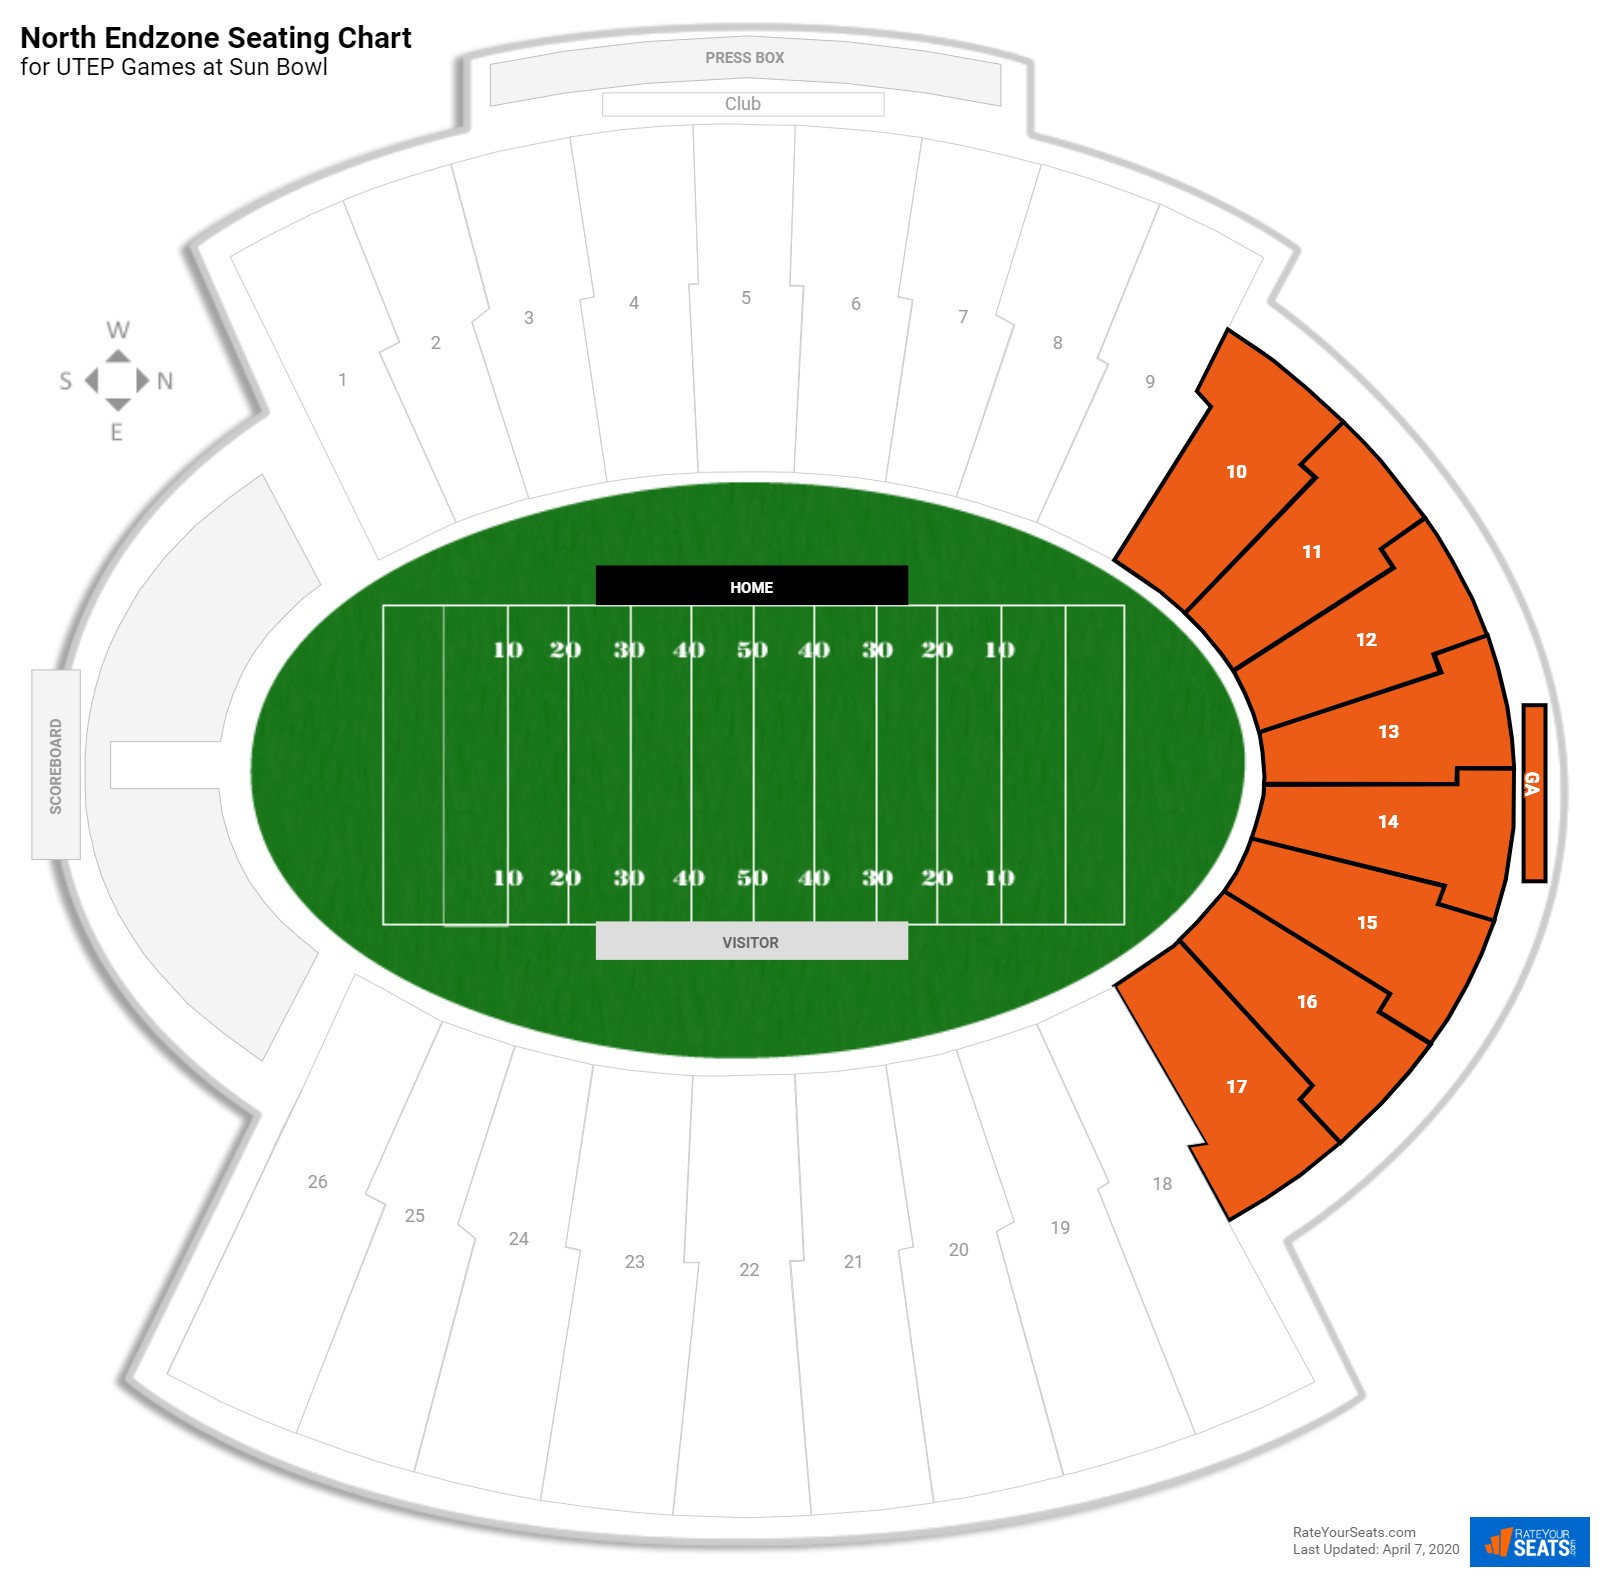 Sun Bowl North Endzone seating chart